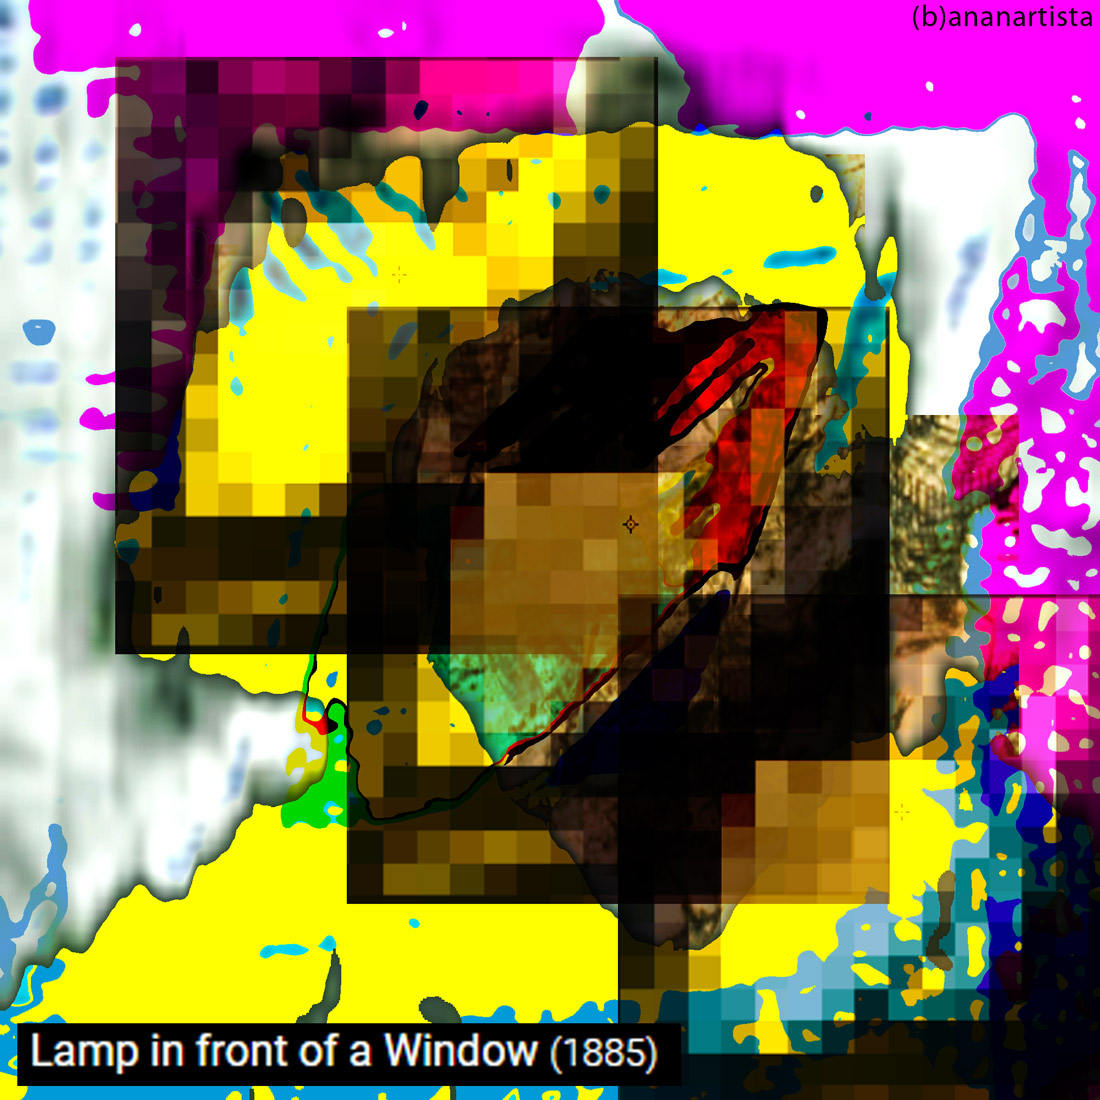 lamp in front of a window: digital painting by (b)ananartista sbuff